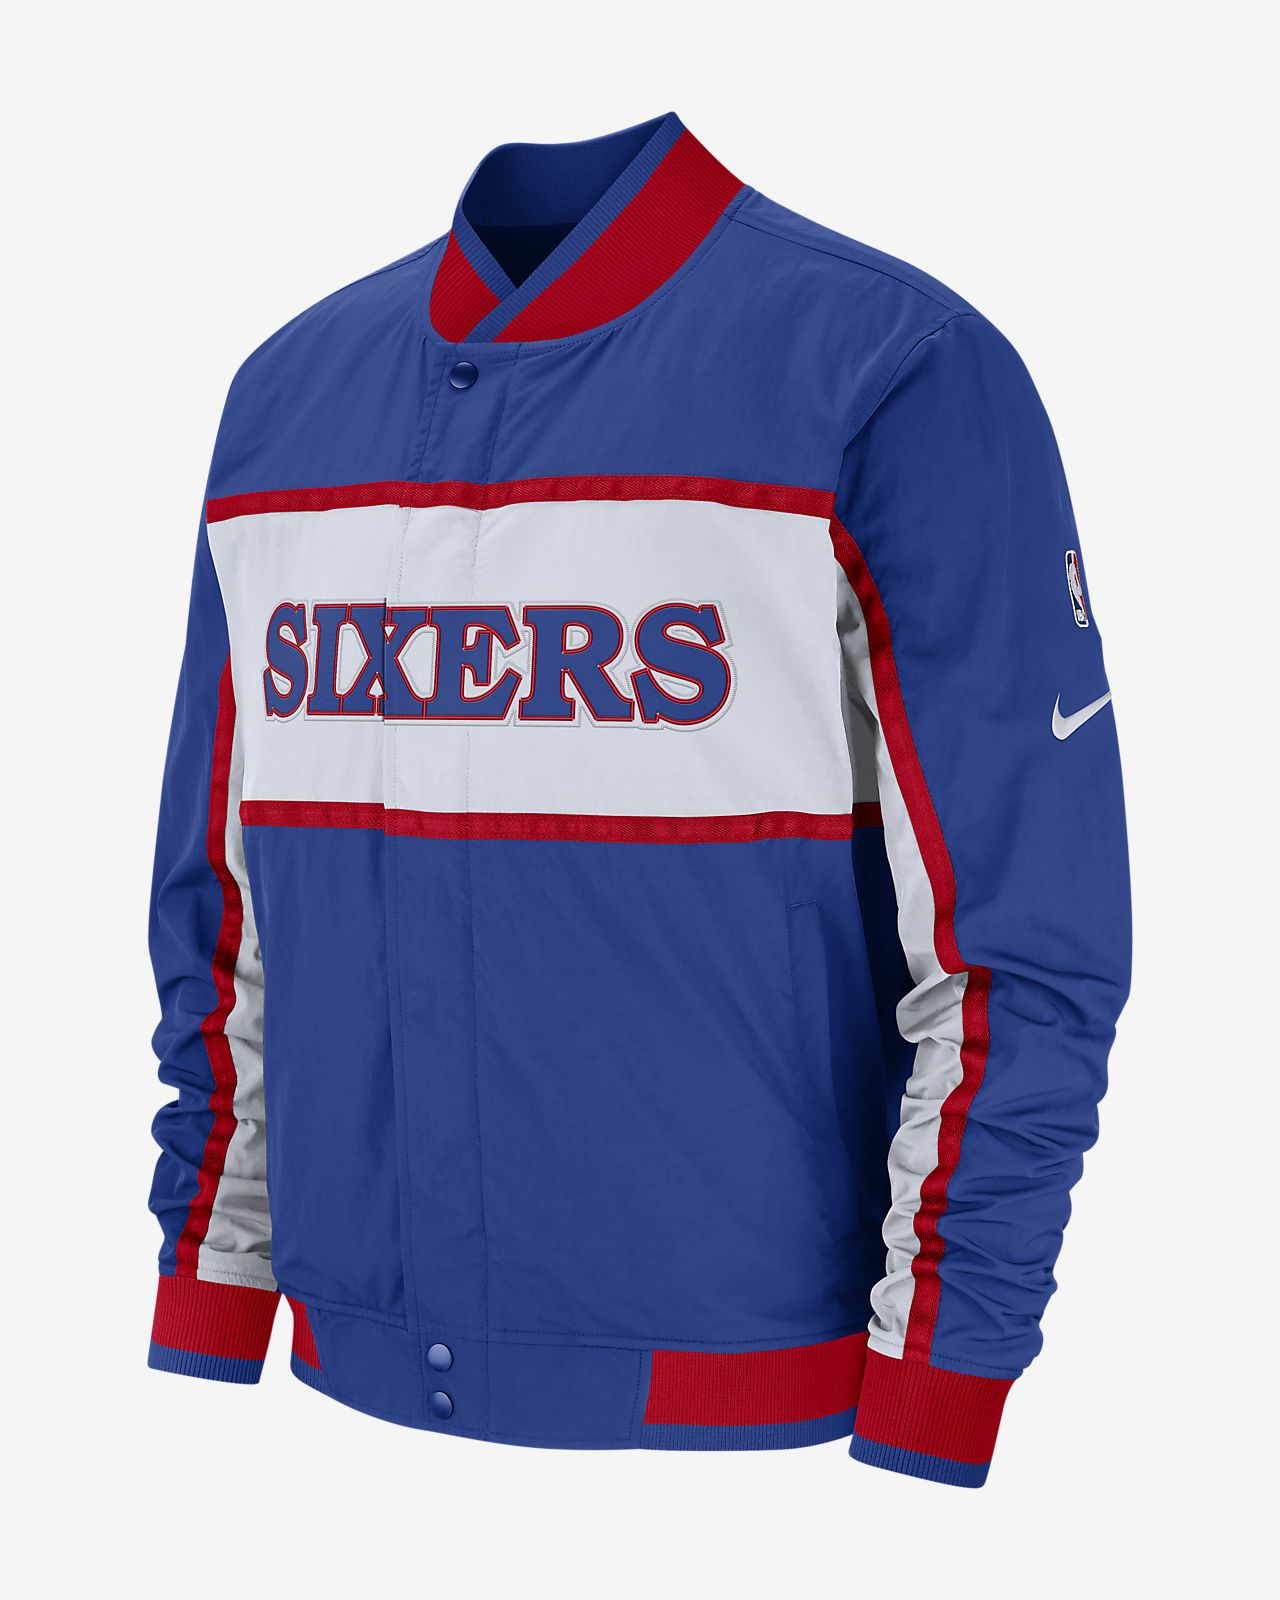 6a43f57dc25 Philadelphia 76ers Nike Courtside Men's NBA Jacket. Nike.com